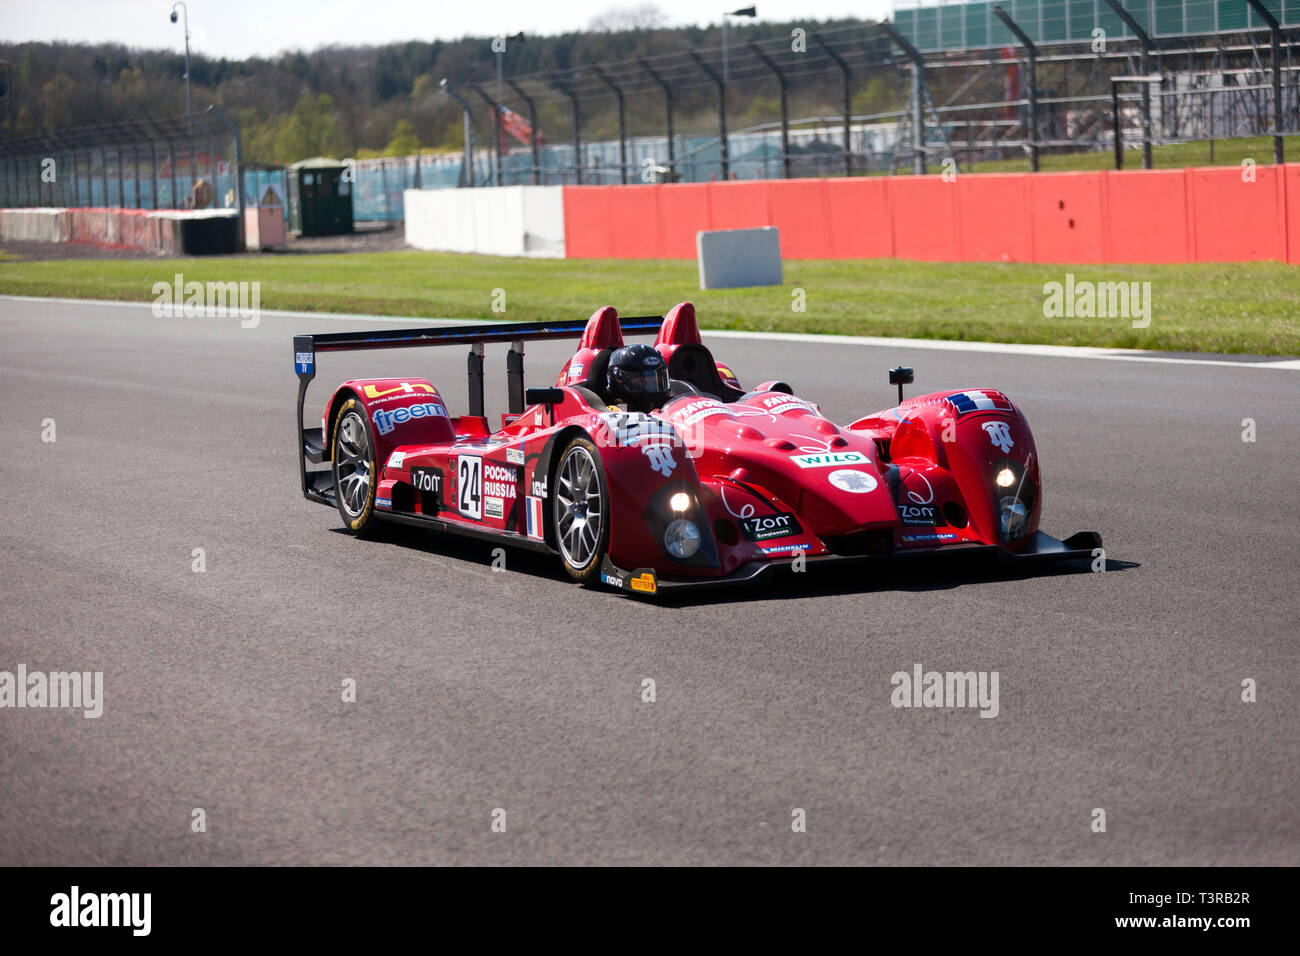 Mike Furness driving his 2007, Courage LC75,  down the International Pit Lane, during the 2019  Silverstone Classic  Media Day /Test Day - Stock Image